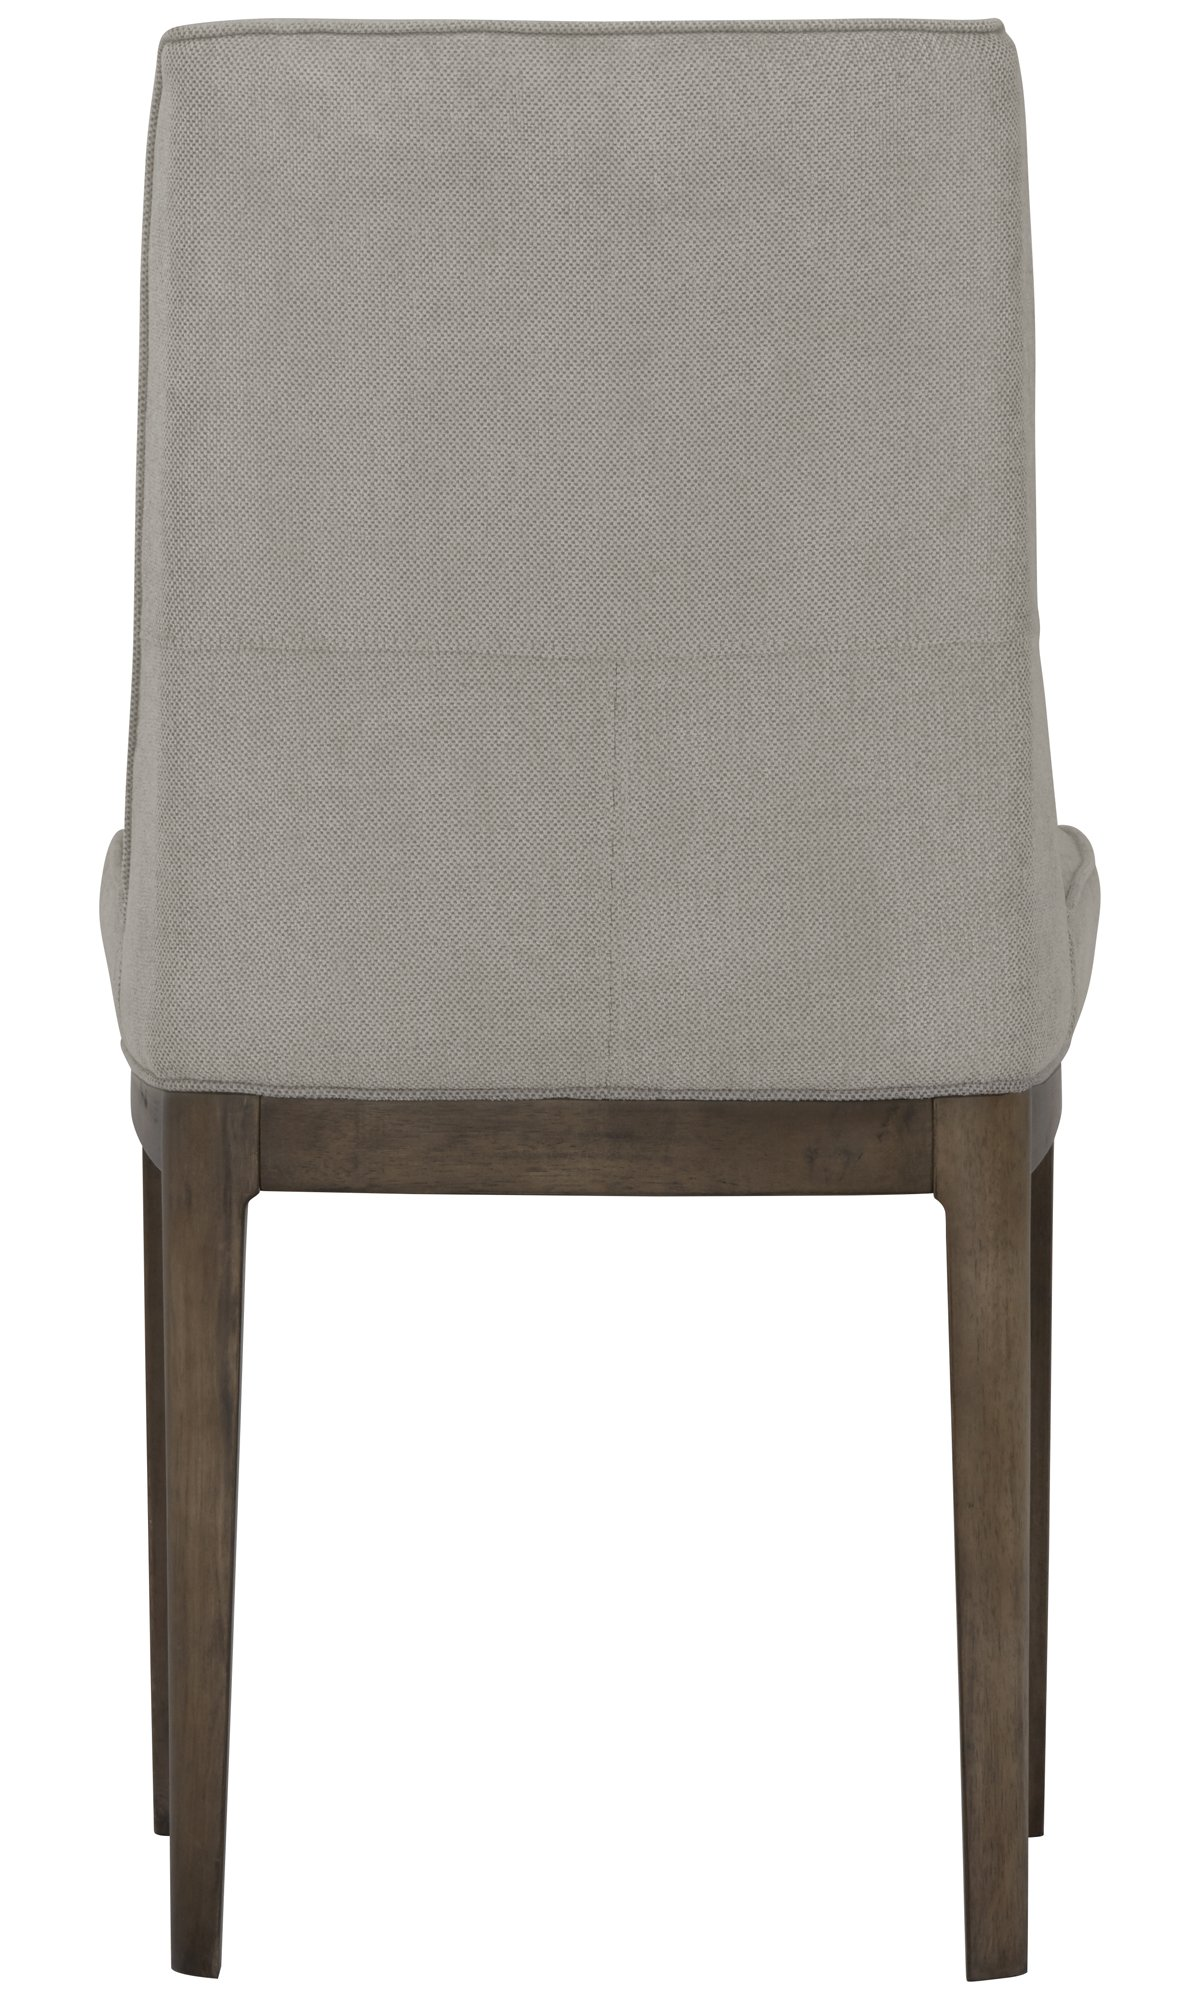 City Furniture Rylan Gray Upholstered Side Chair